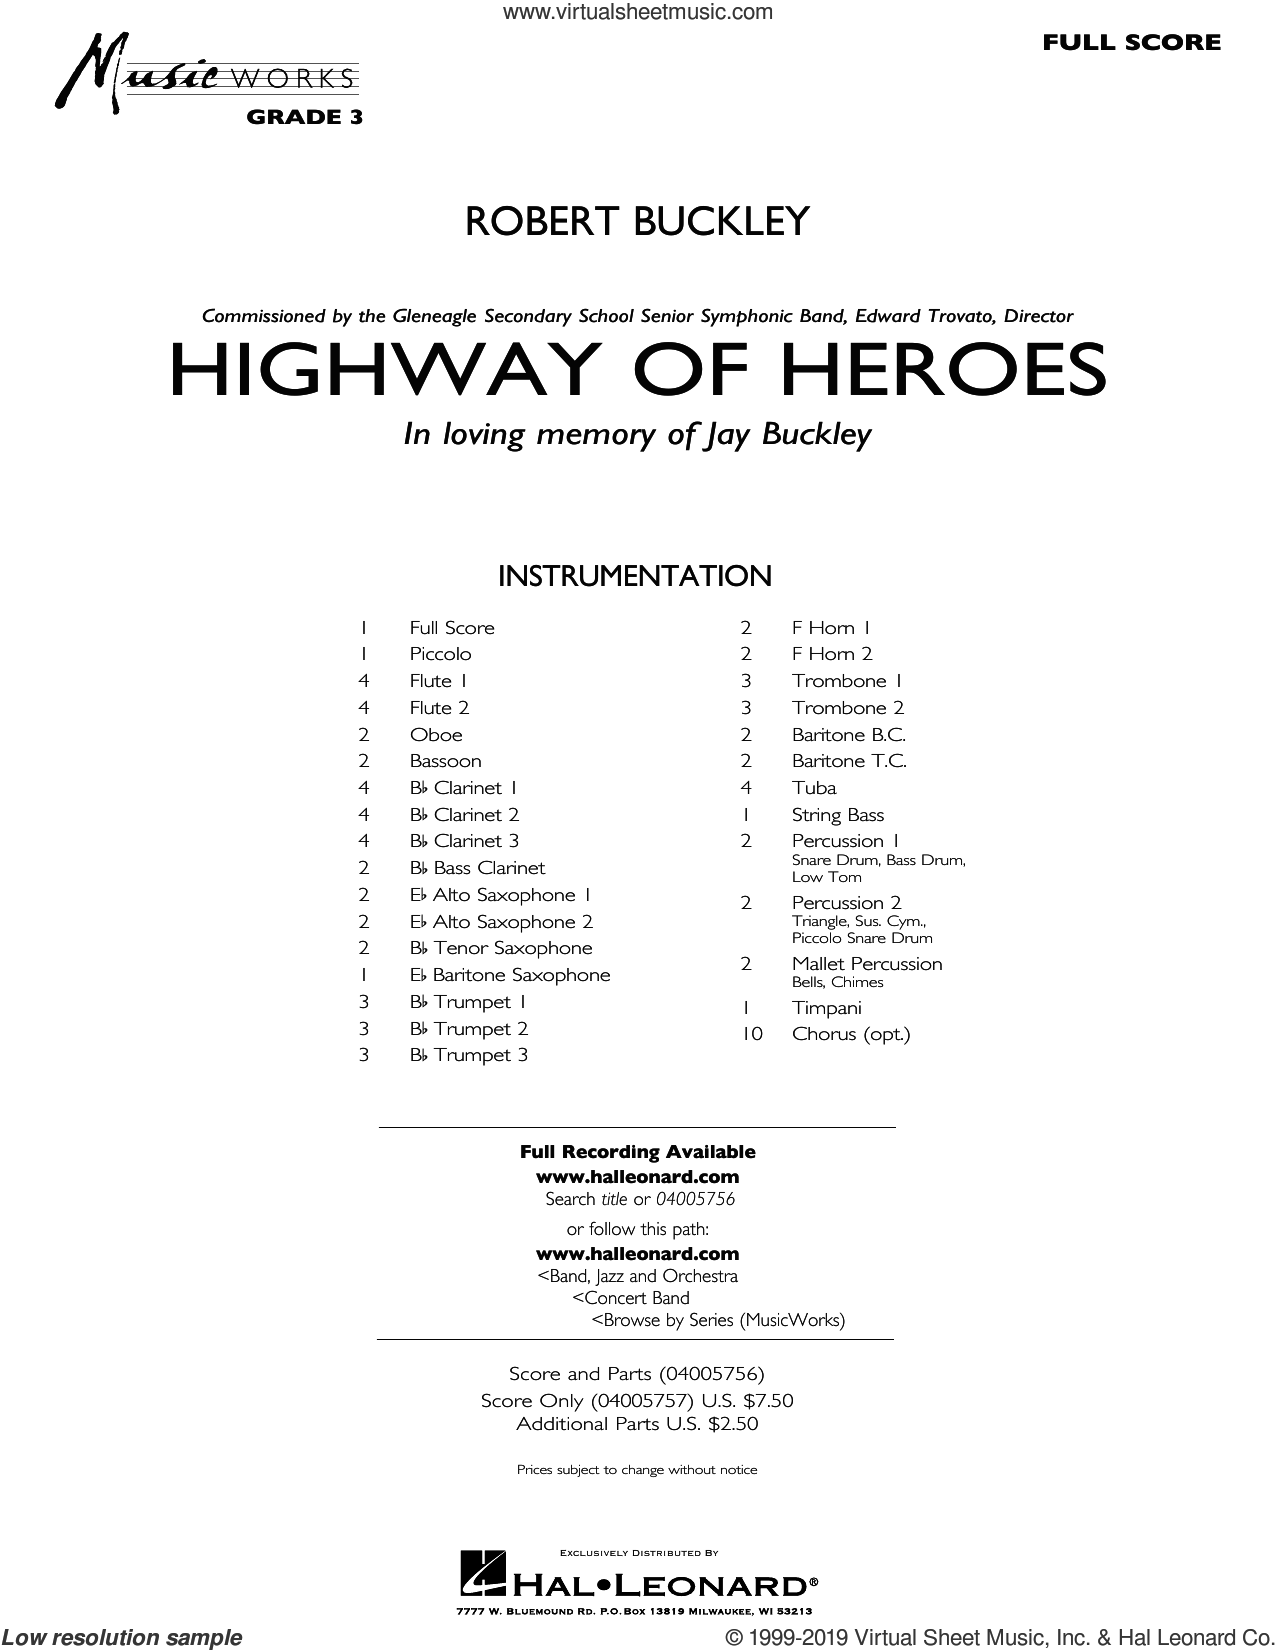 Highway of Heroes (COMPLETE) sheet music for concert band by Robert Buckley, intermediate skill level